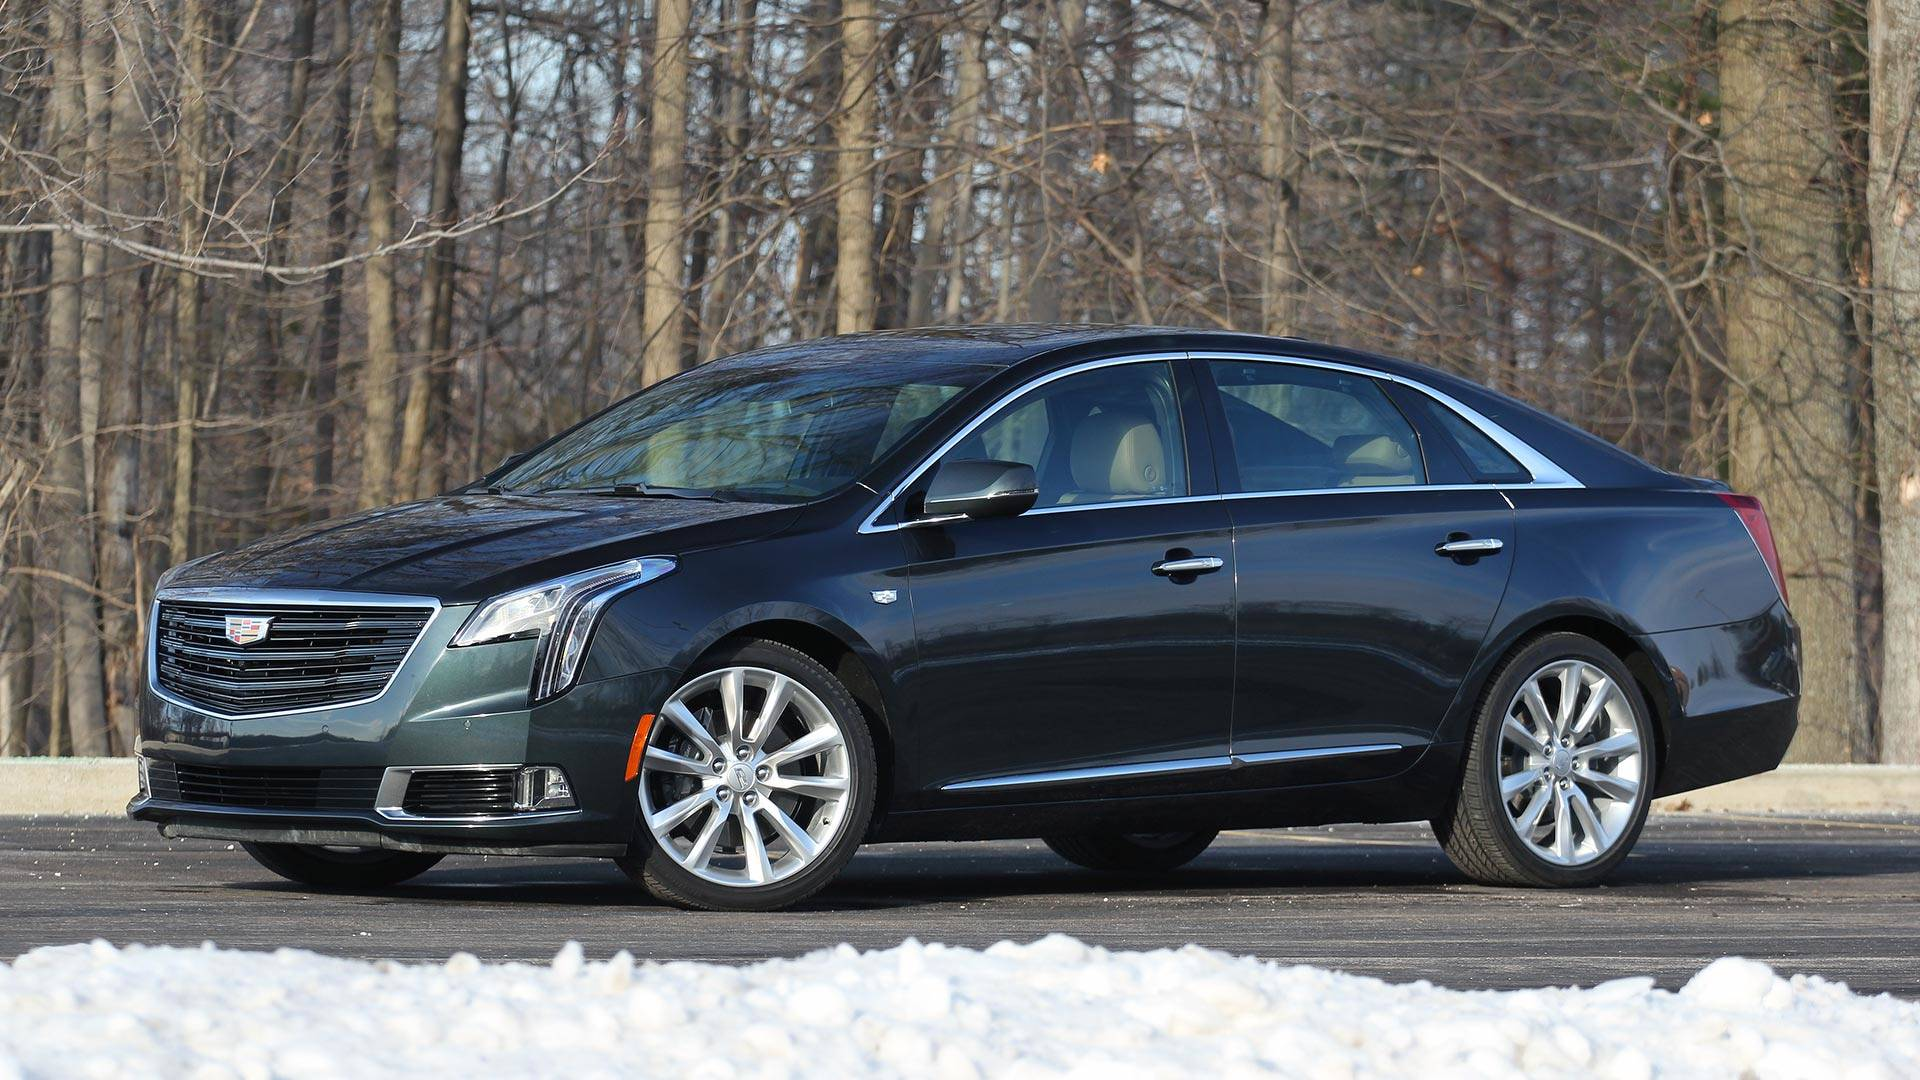 brake vseries but fit wouldn s bigger it cuz cadillac a cargurus my think xts getting premium pads cars because mixed the pic are with car t questions discussion that vsport says they i up